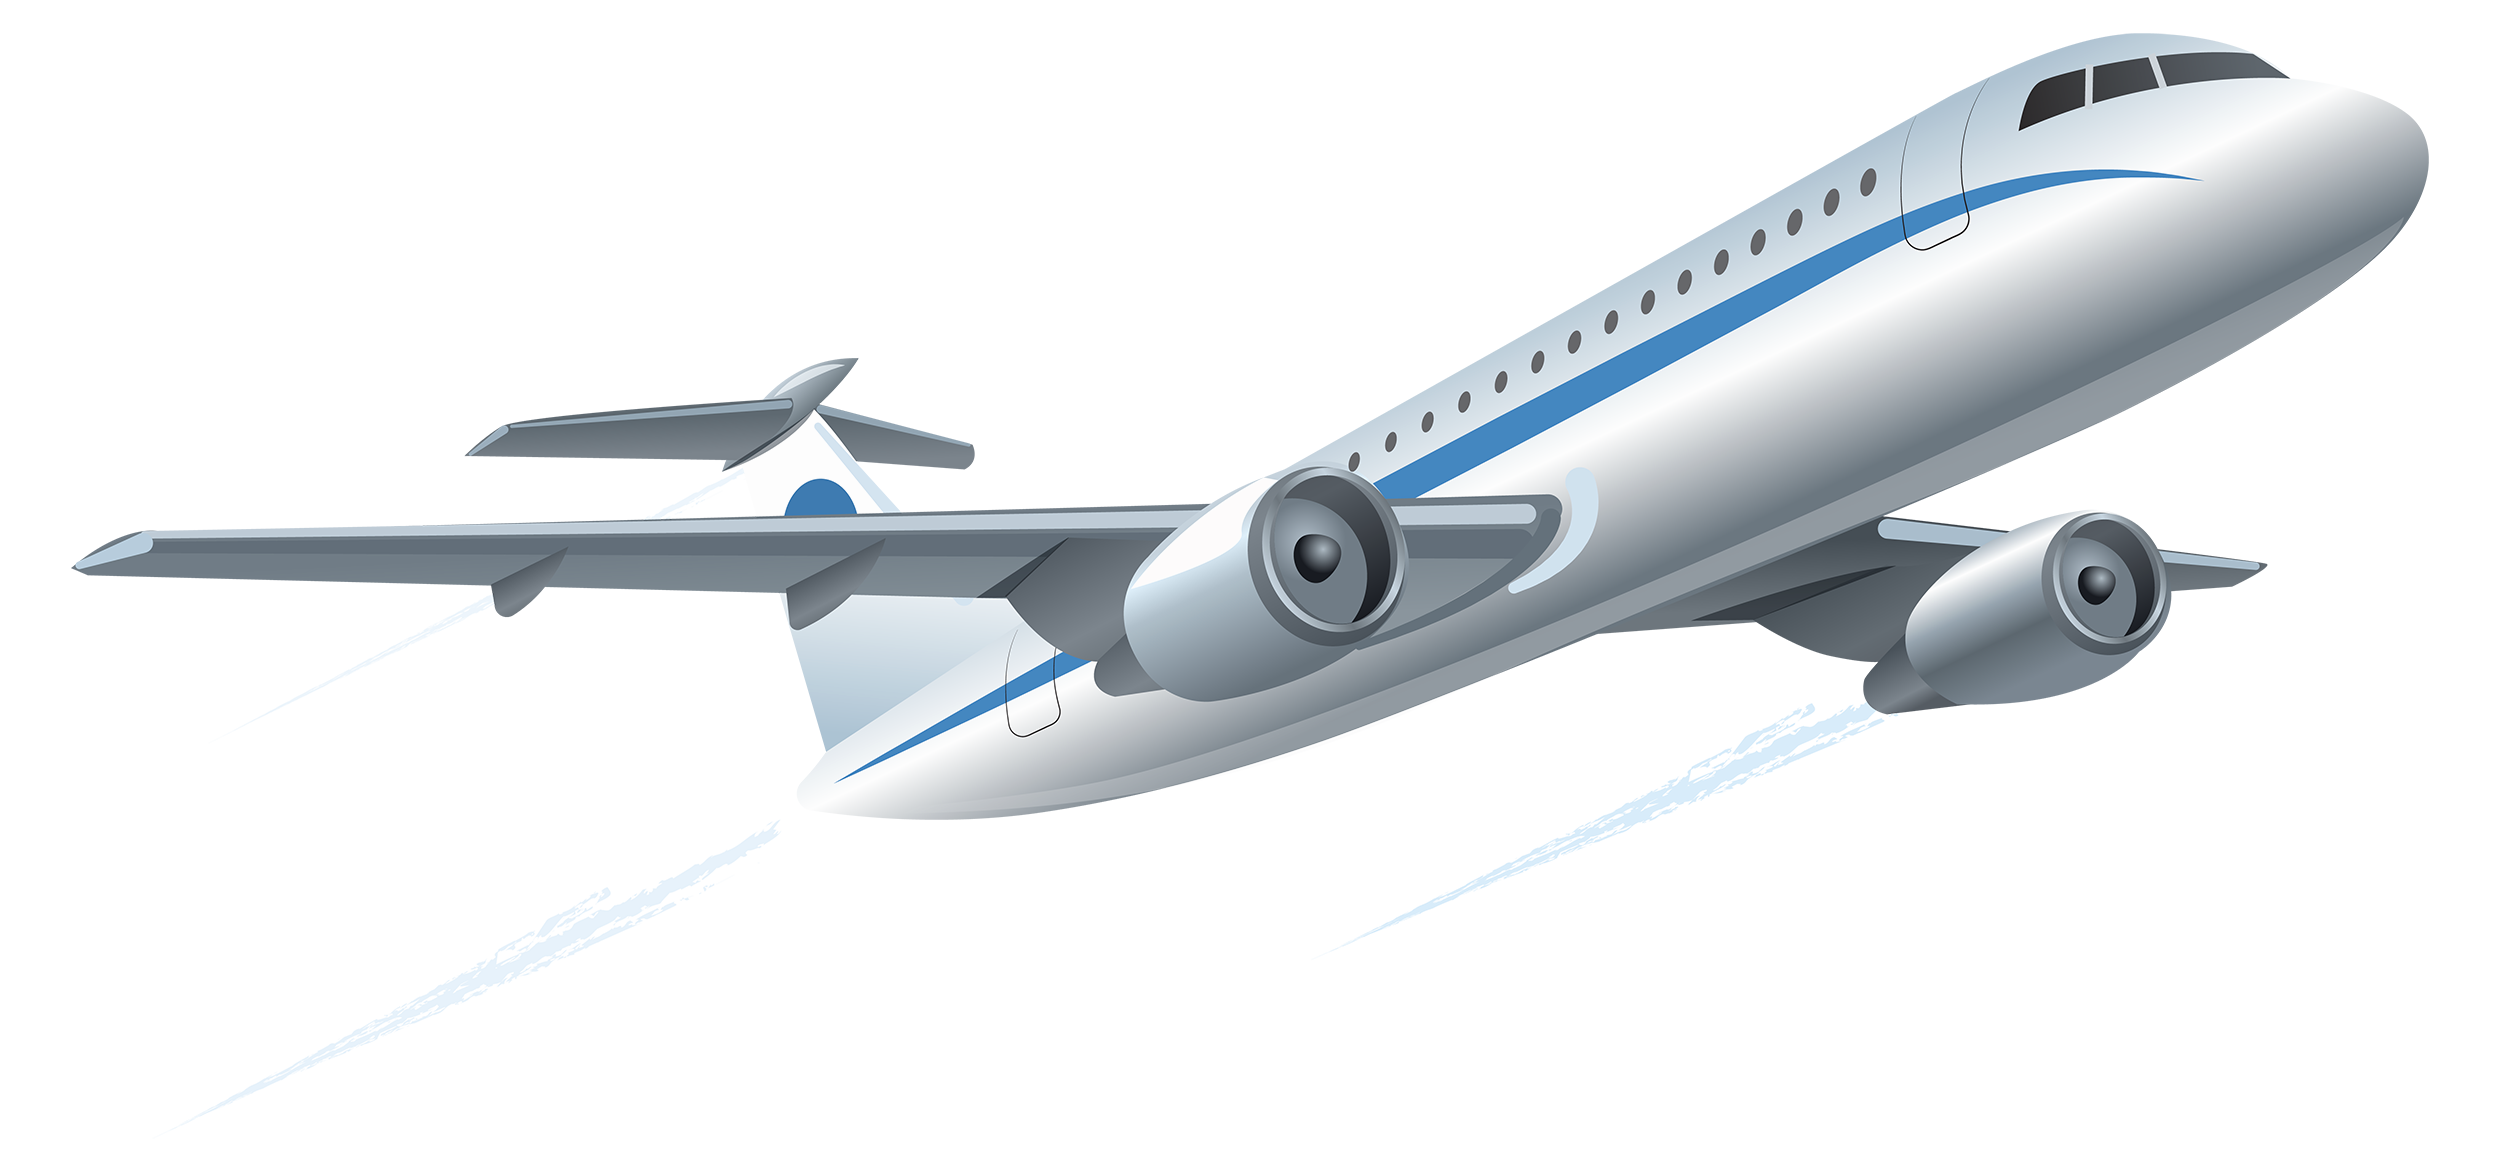 Transparent Background Airplane image #27957